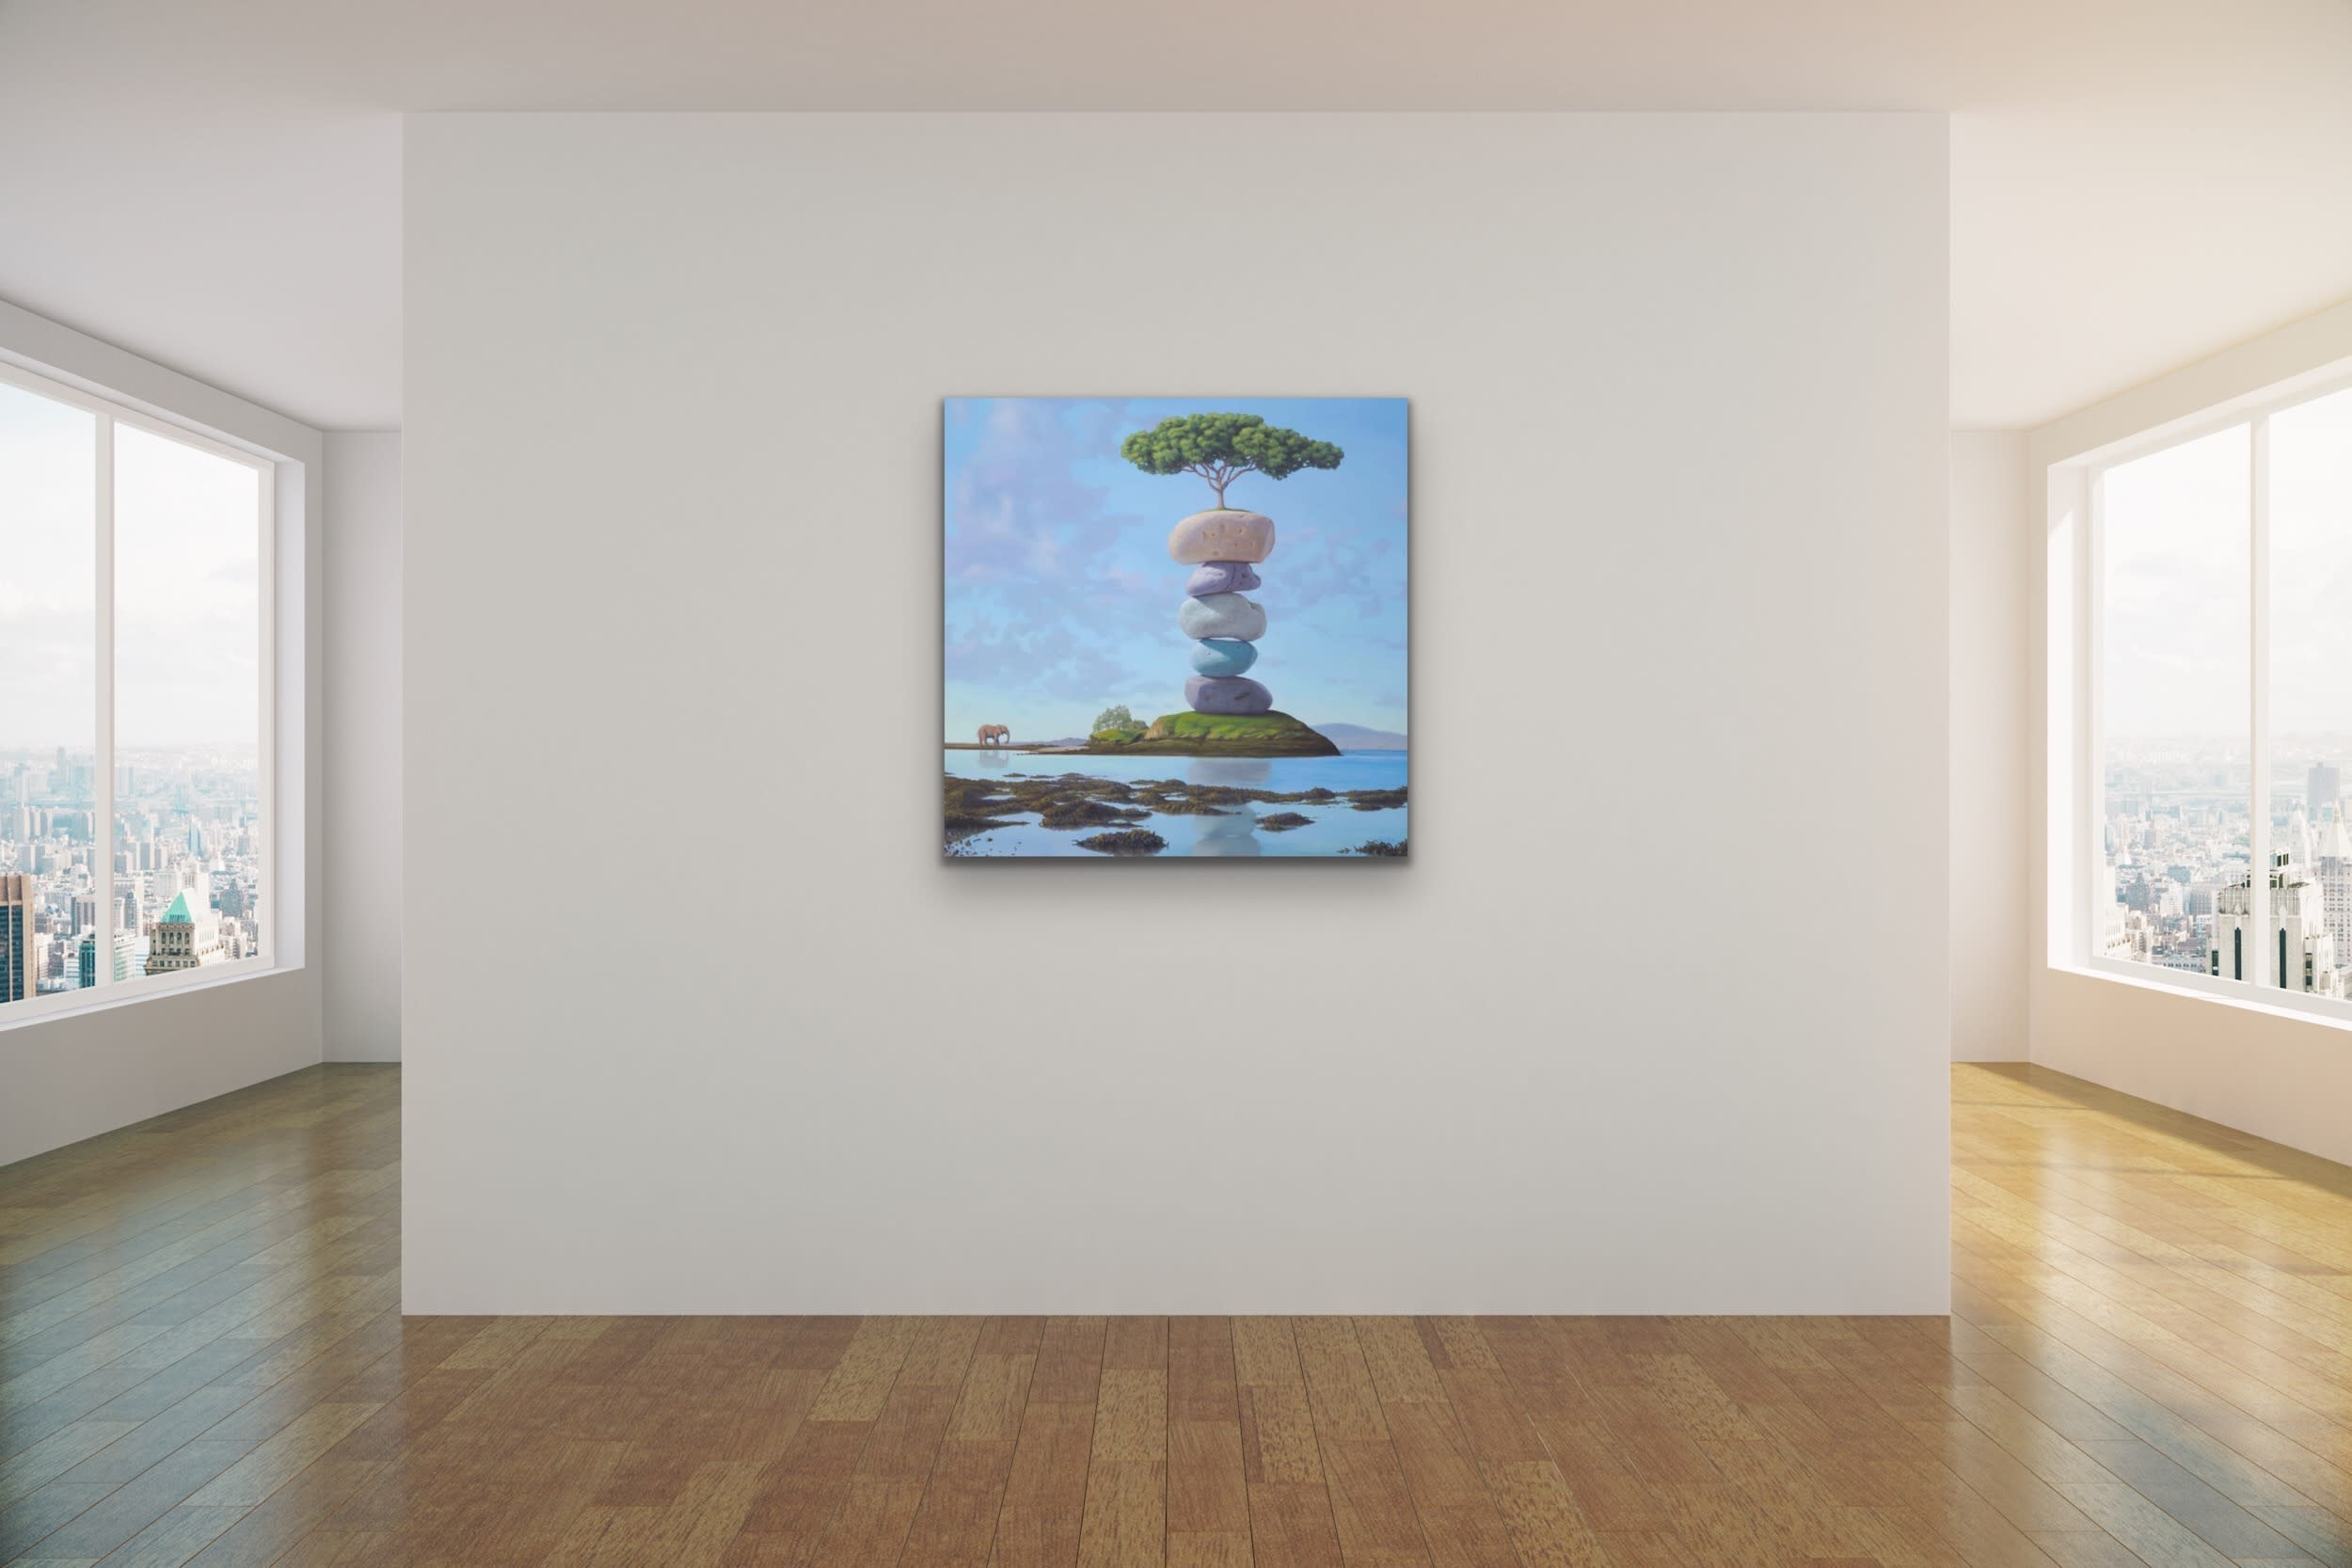 <div class='title'>           Paul Bond Artwork   Evo Art Maui Front St Street Lahaina Maui Hawaii Gallery Higher Purpose New Blue Longhis Surreal Metaphorical Allegorical Fantasy Whimsical Magical Realism Animals Stones Rocks Stacked Nature         </div>